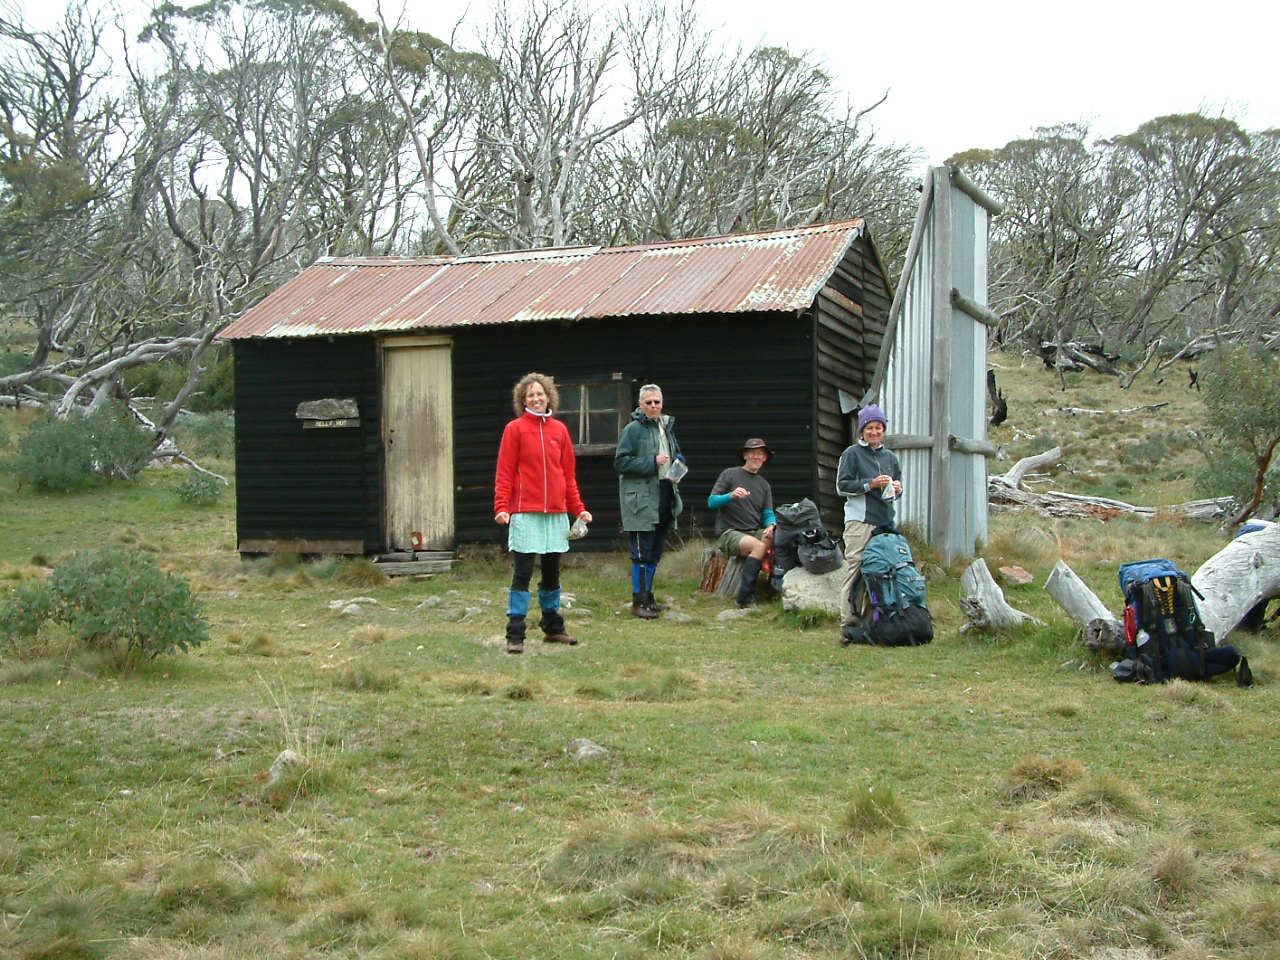 Group at hut